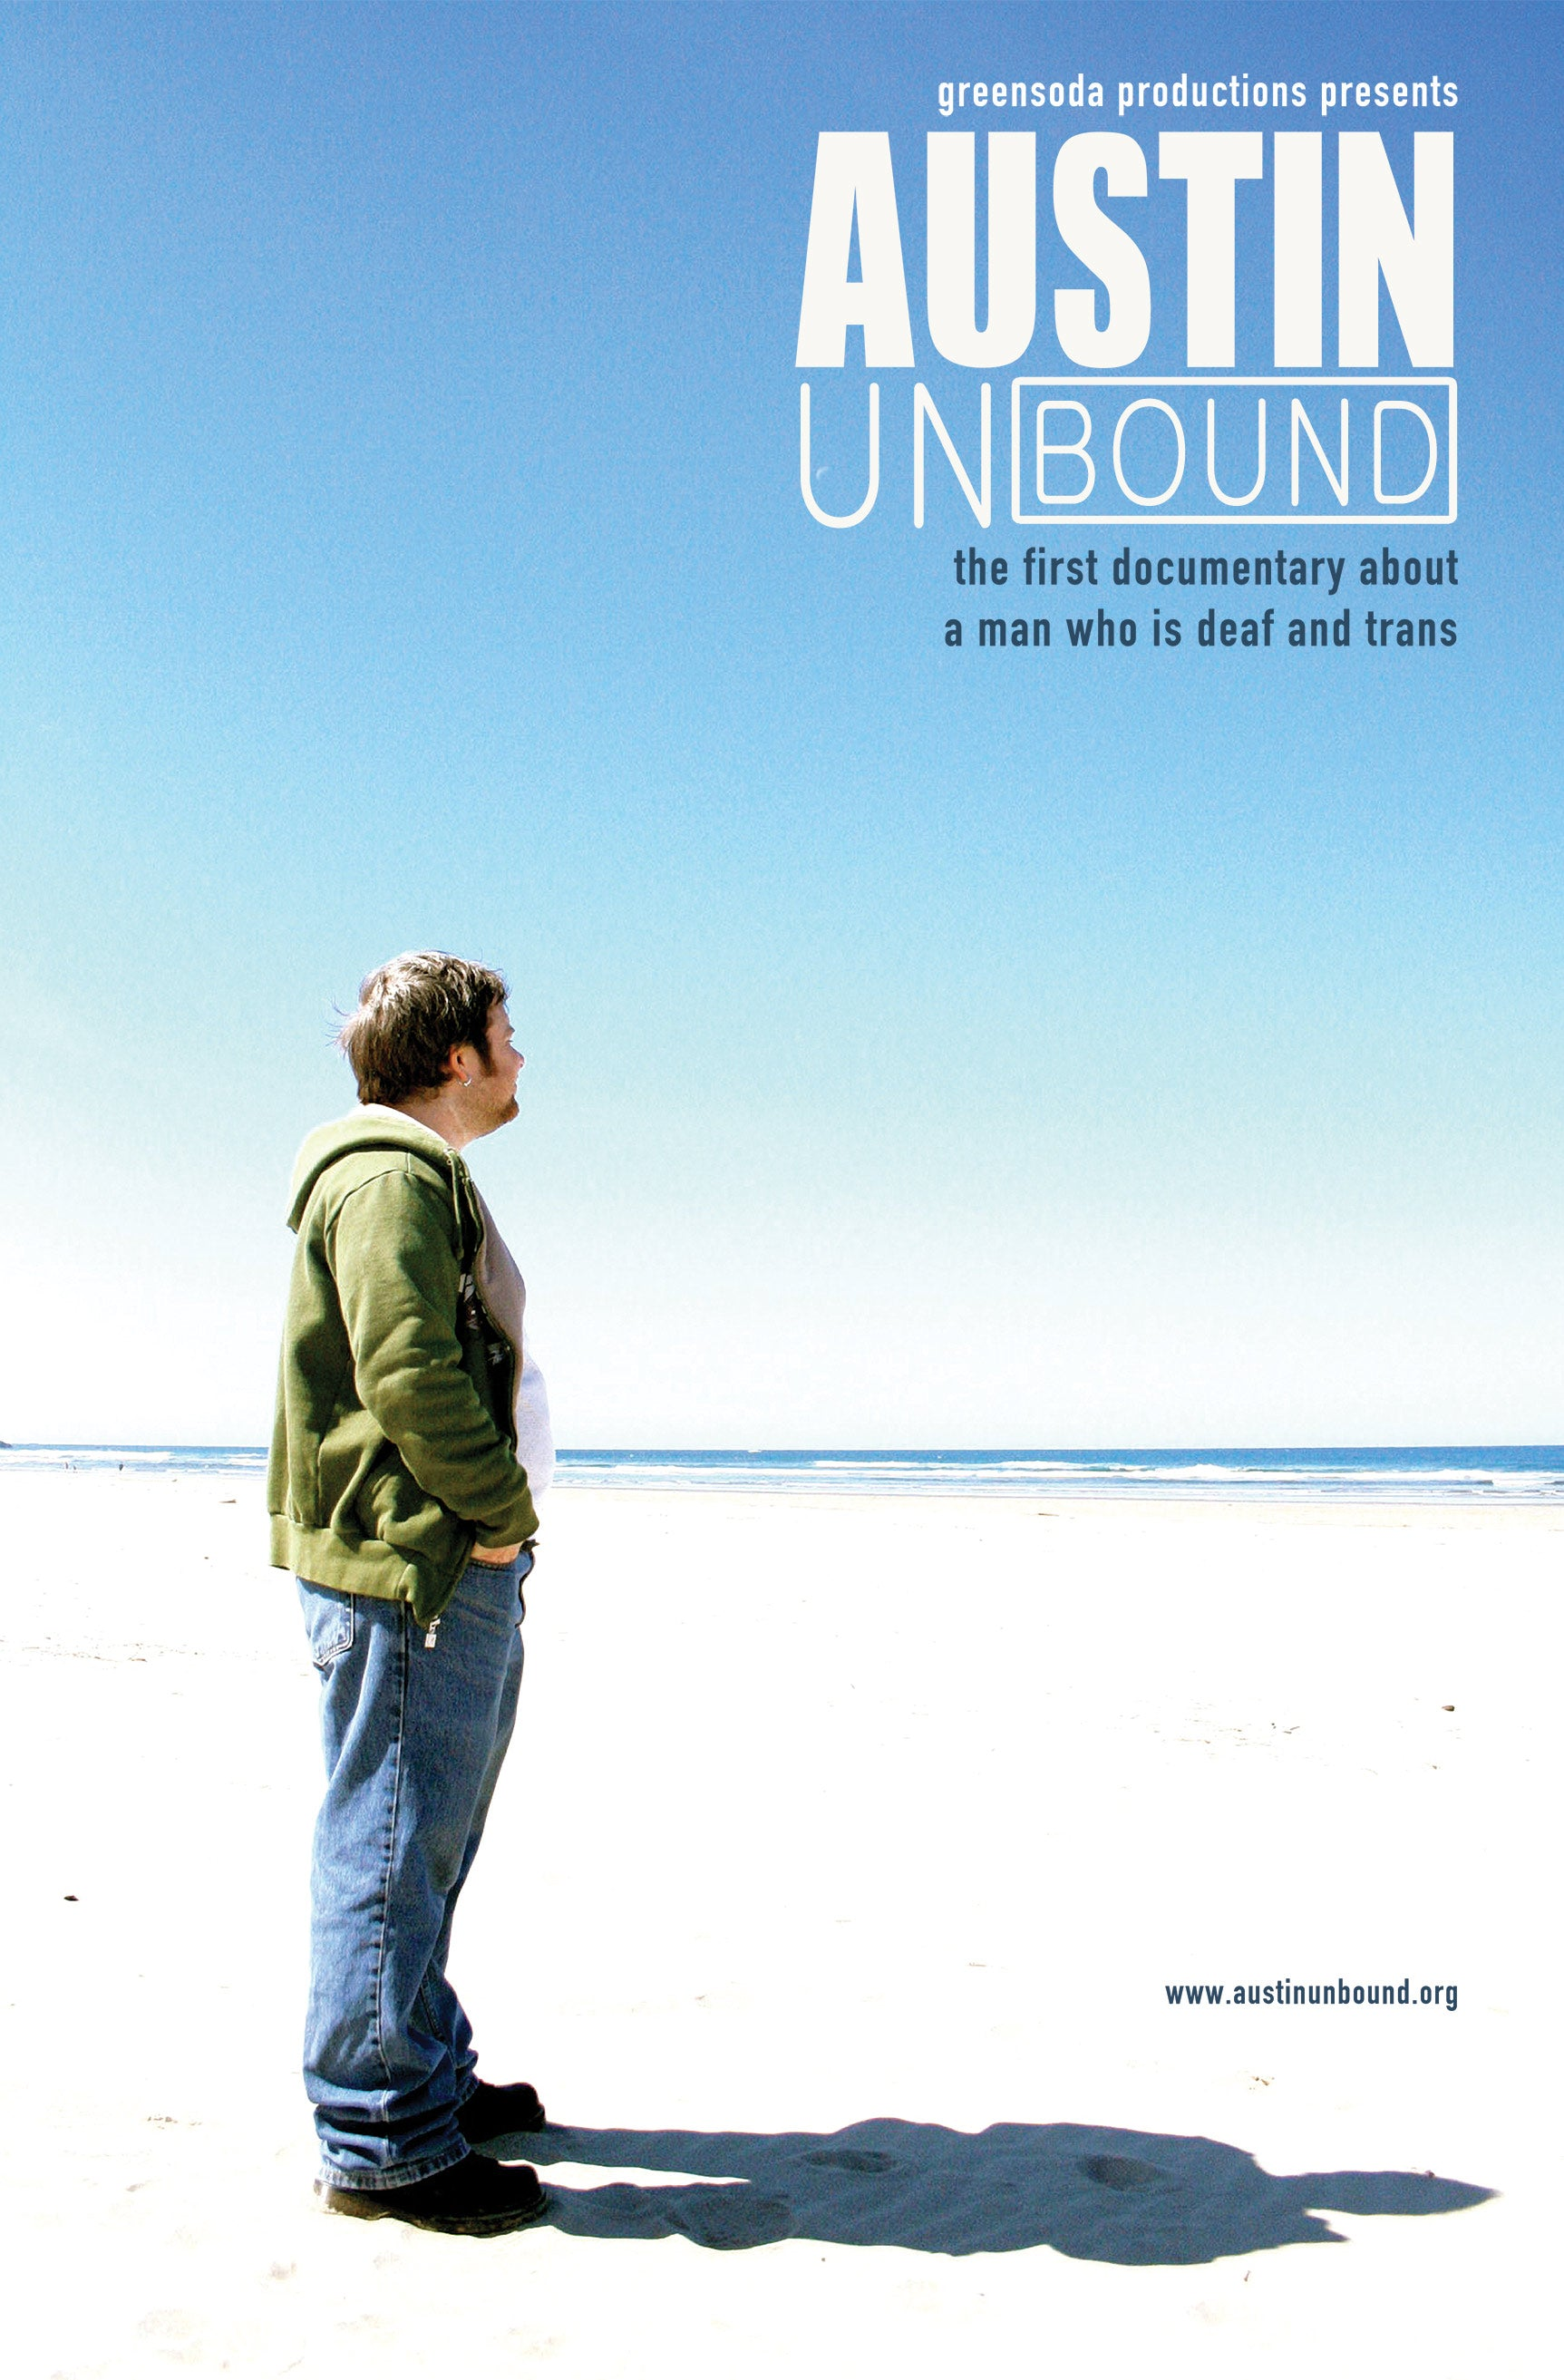 Austin Unbound: a Deaf Journey of Transgender Heroism